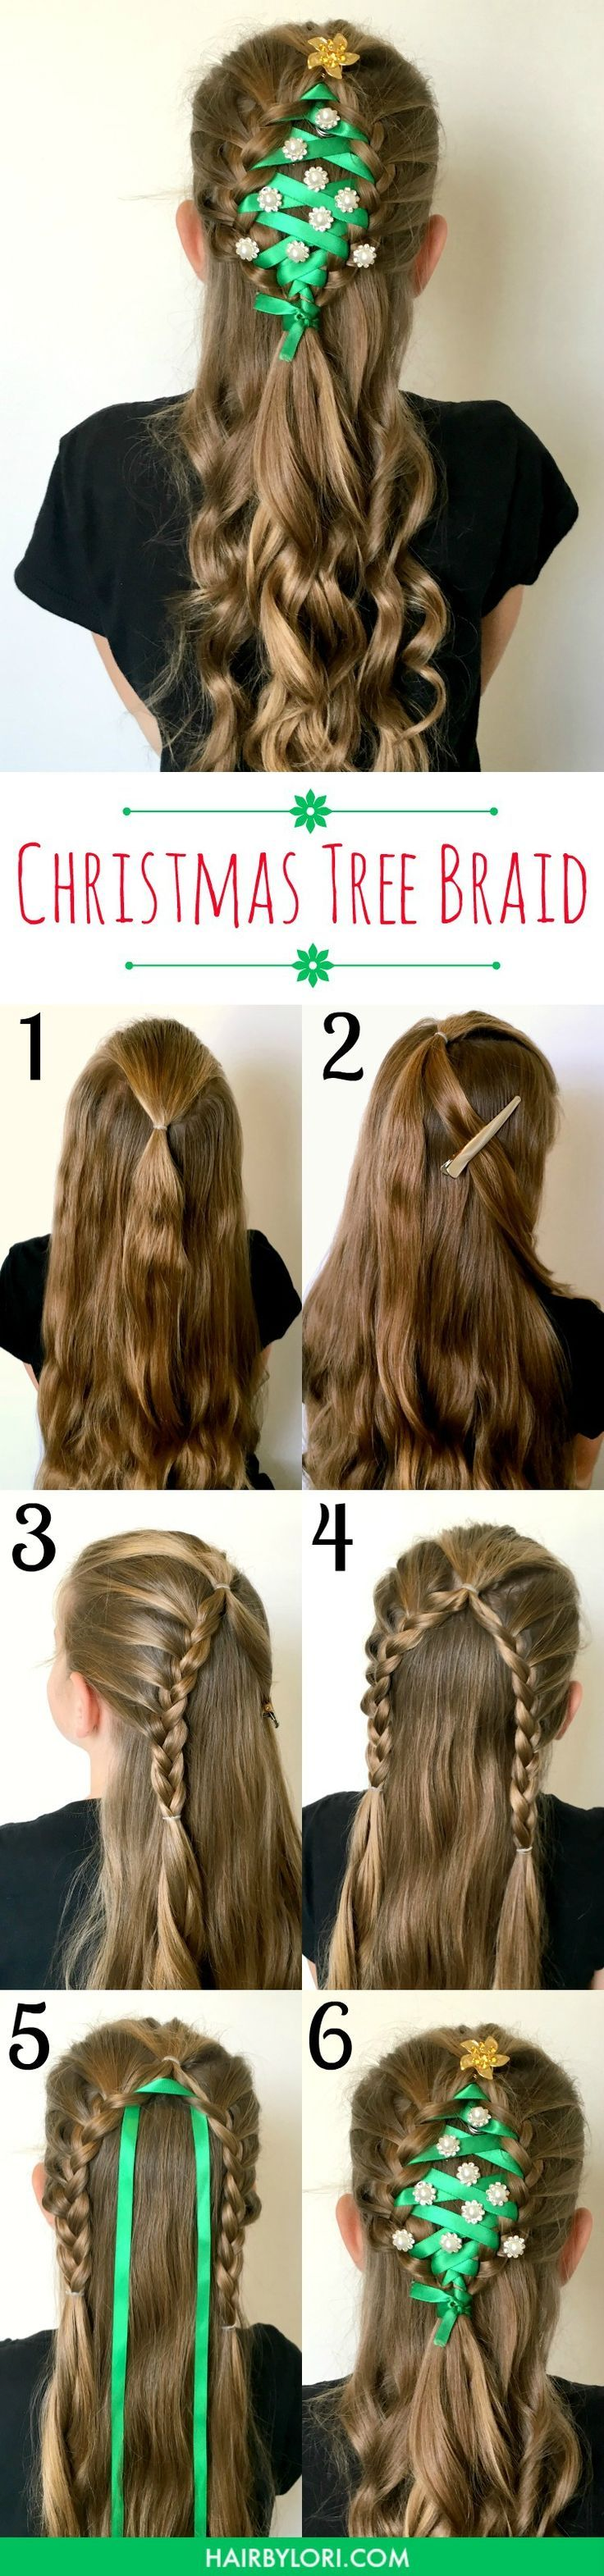 81 best Easy Hair Styles images on Pinterest